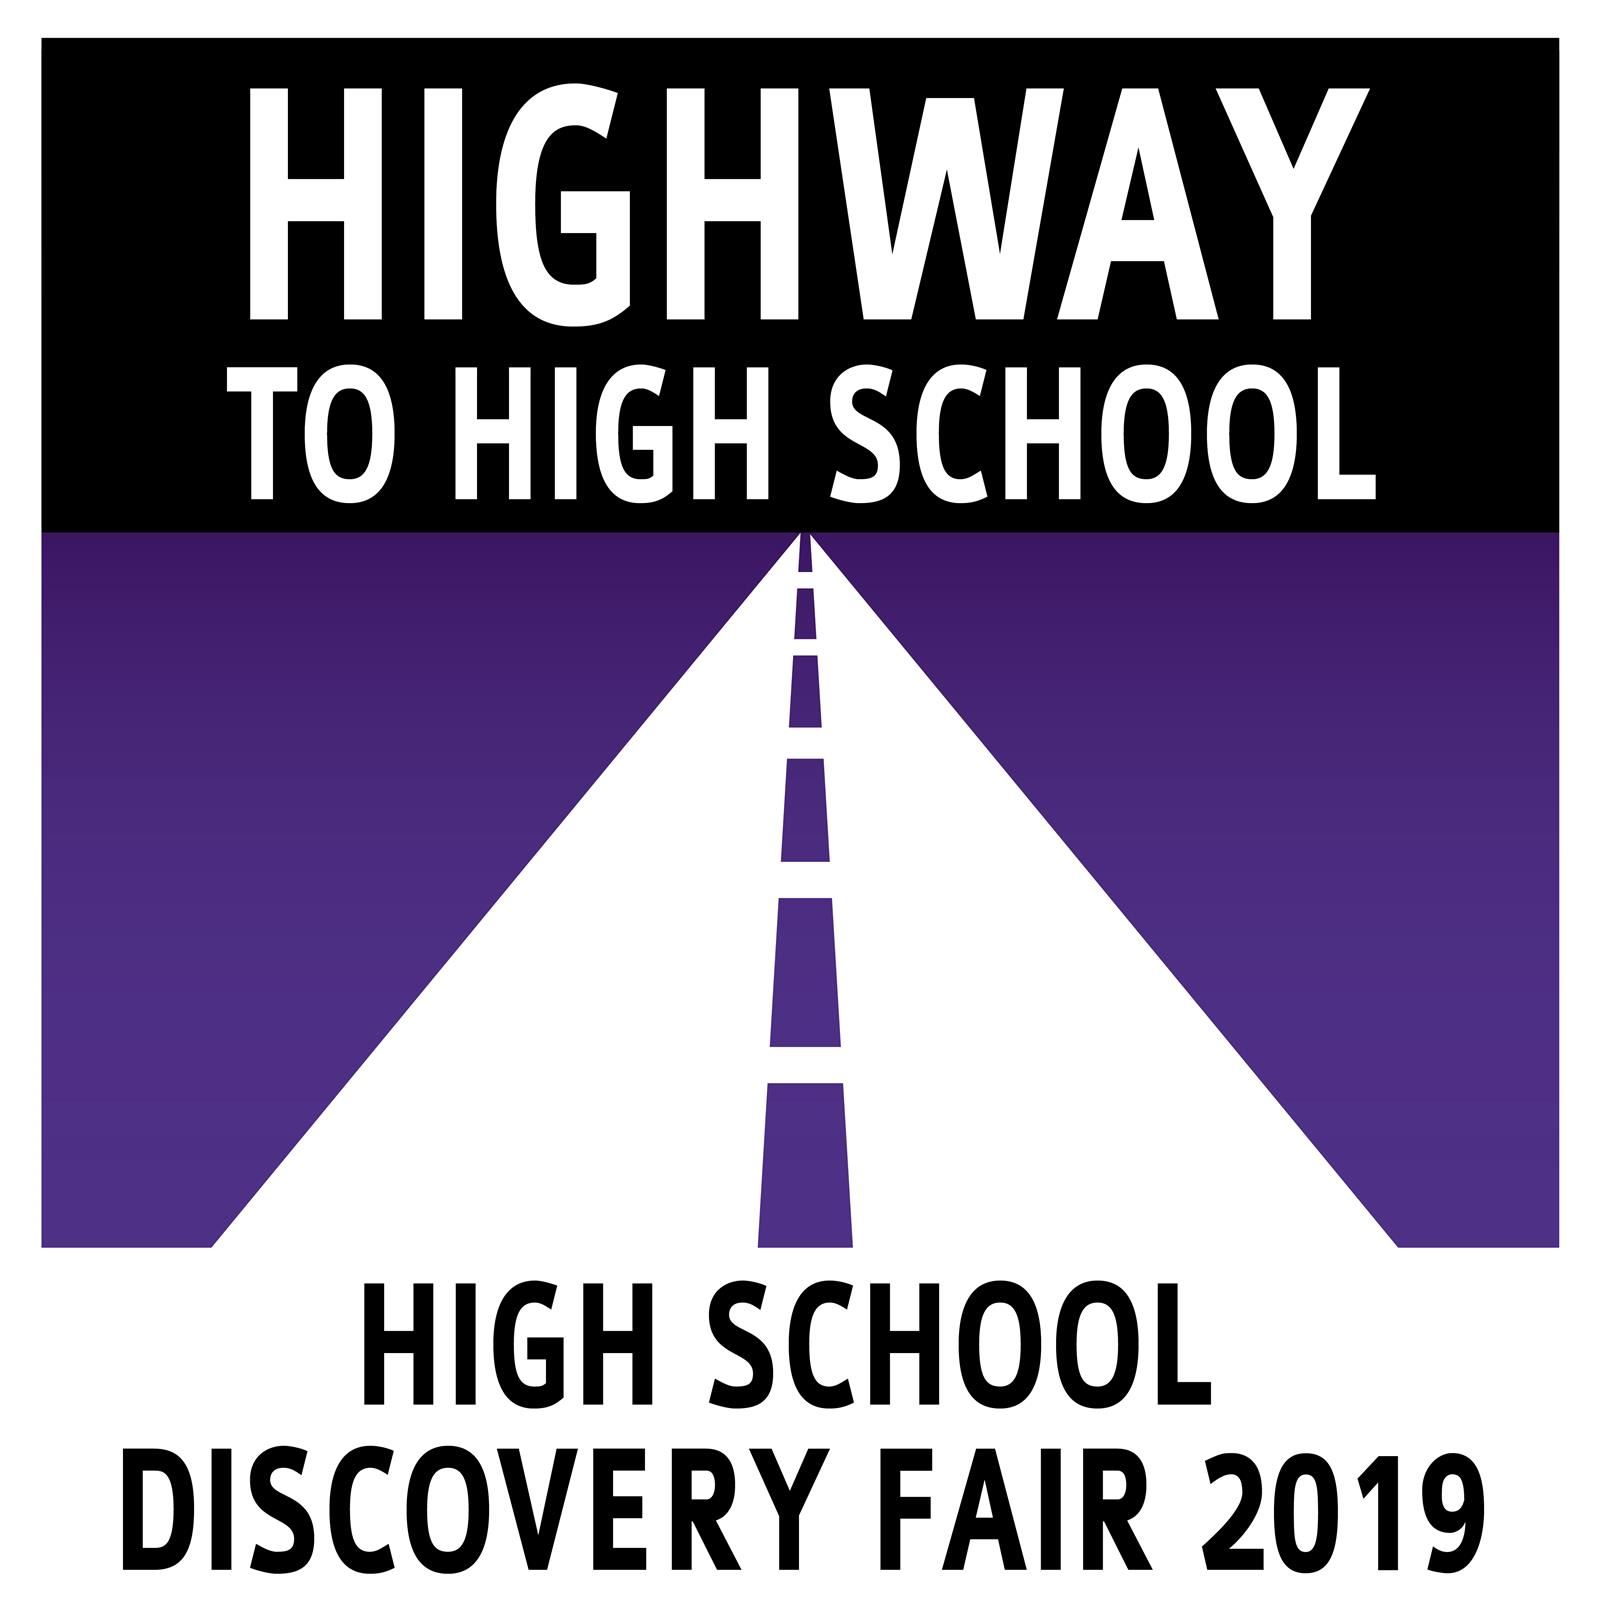 Highway to High School: High School Discovery Fair 2019